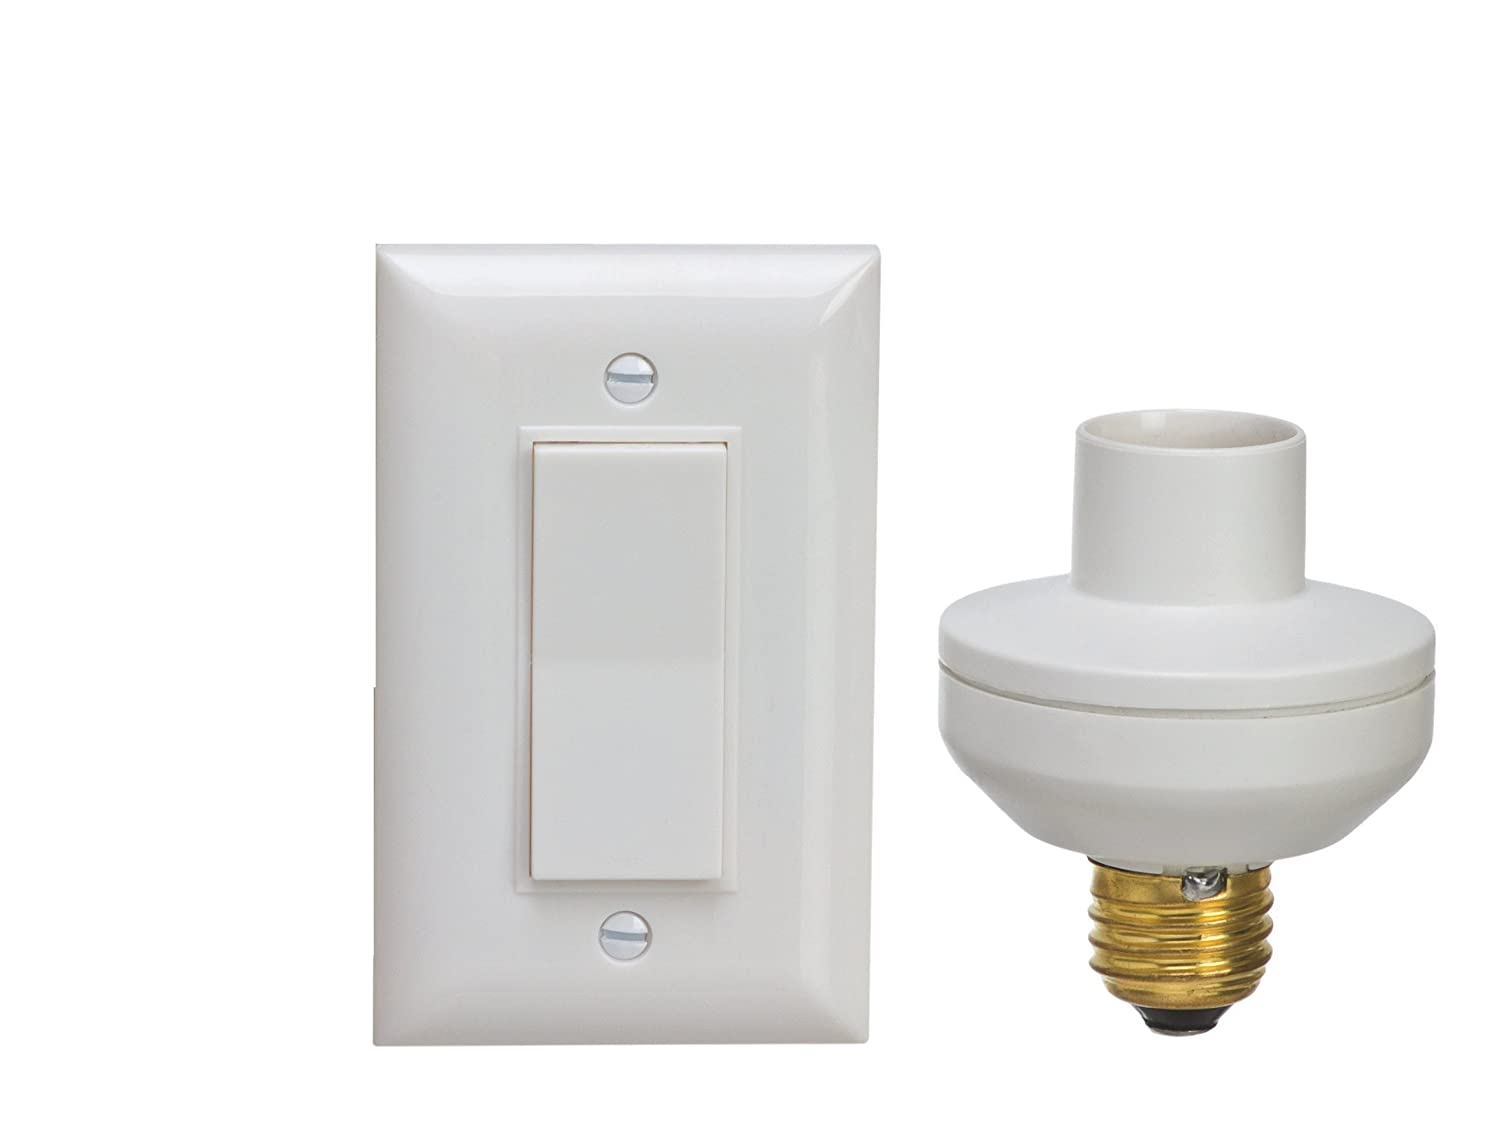 Wireless Remote Control Light Switch and Socket Cap to Turn Lamps ...